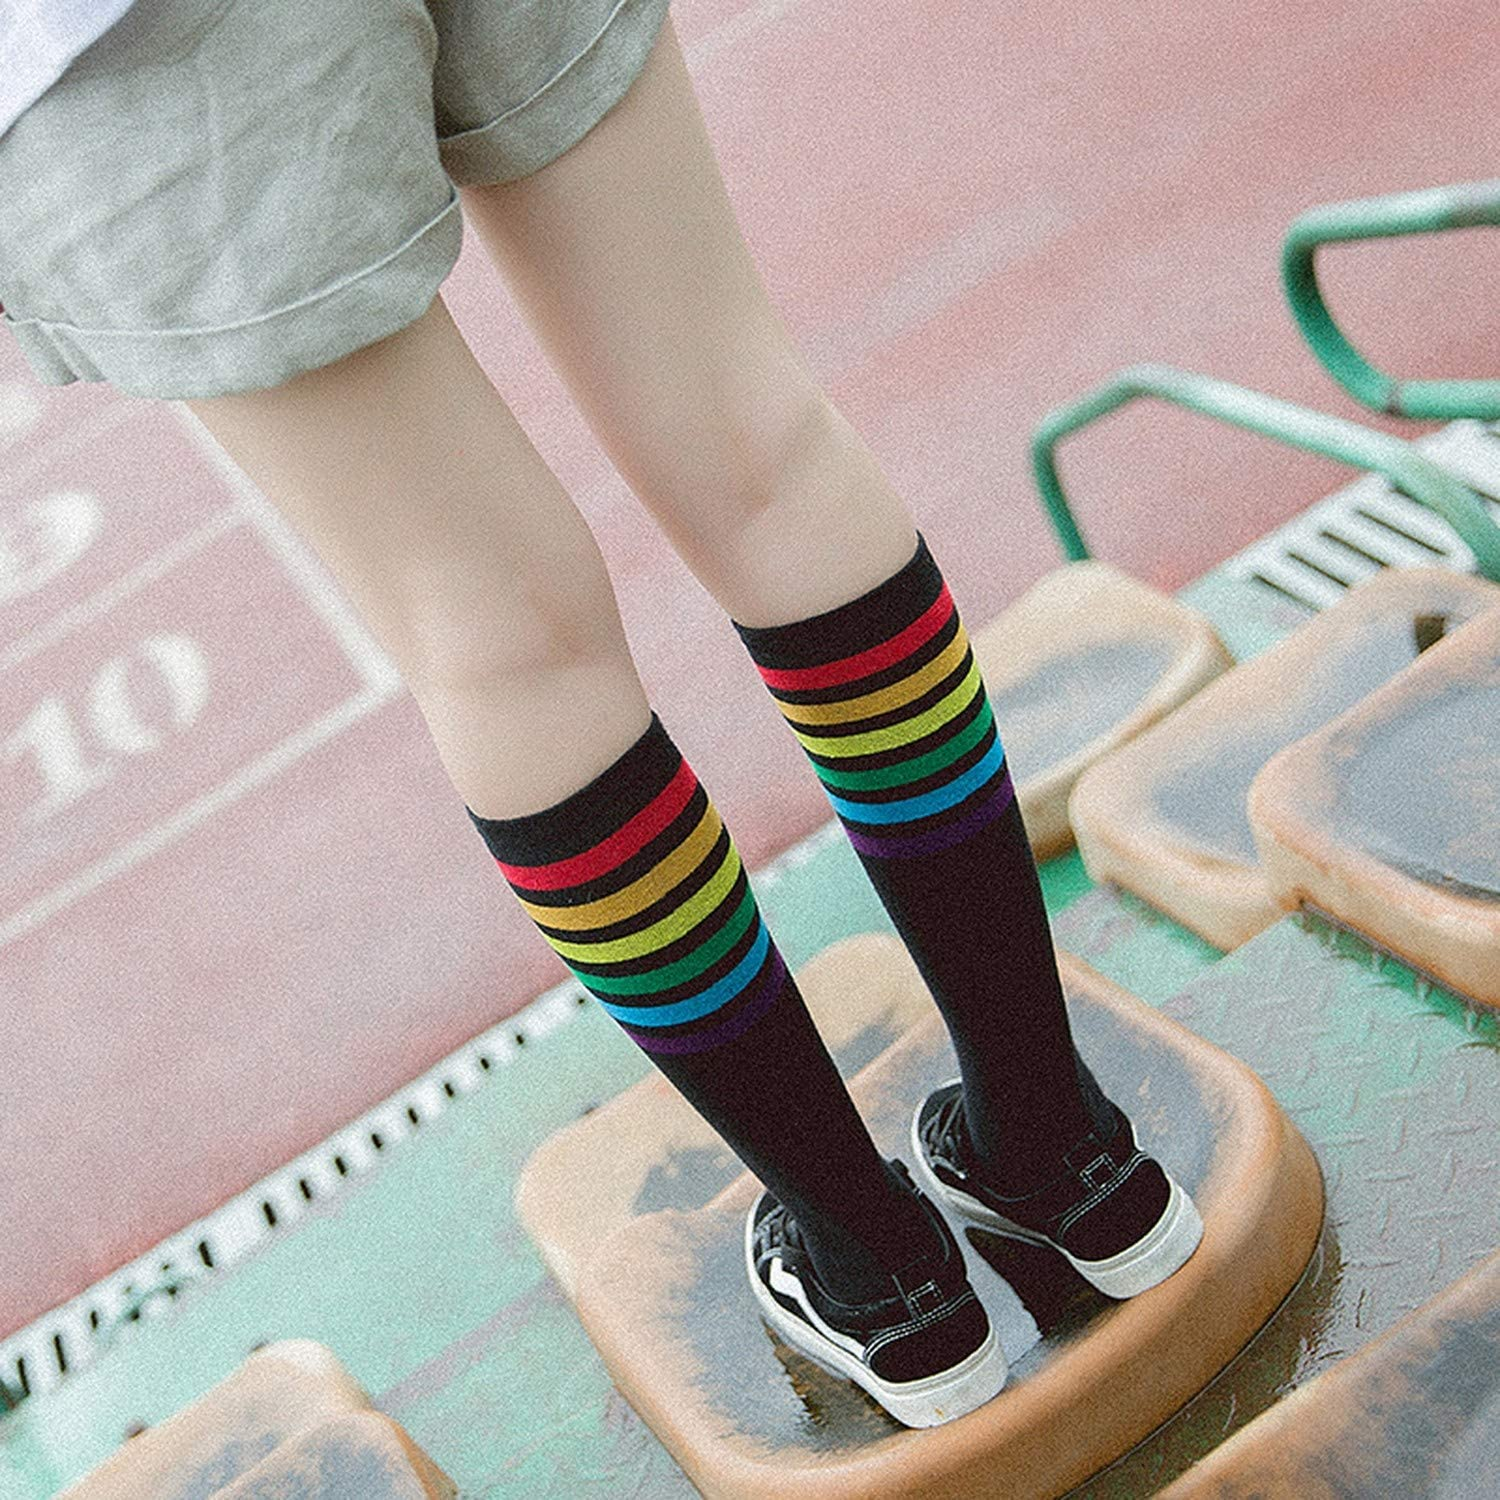 Japanese WomenS Rainbow Striped Stockings Fall Cute Women Students Girls Colorful Stripes Black White Cotton Knee Socks